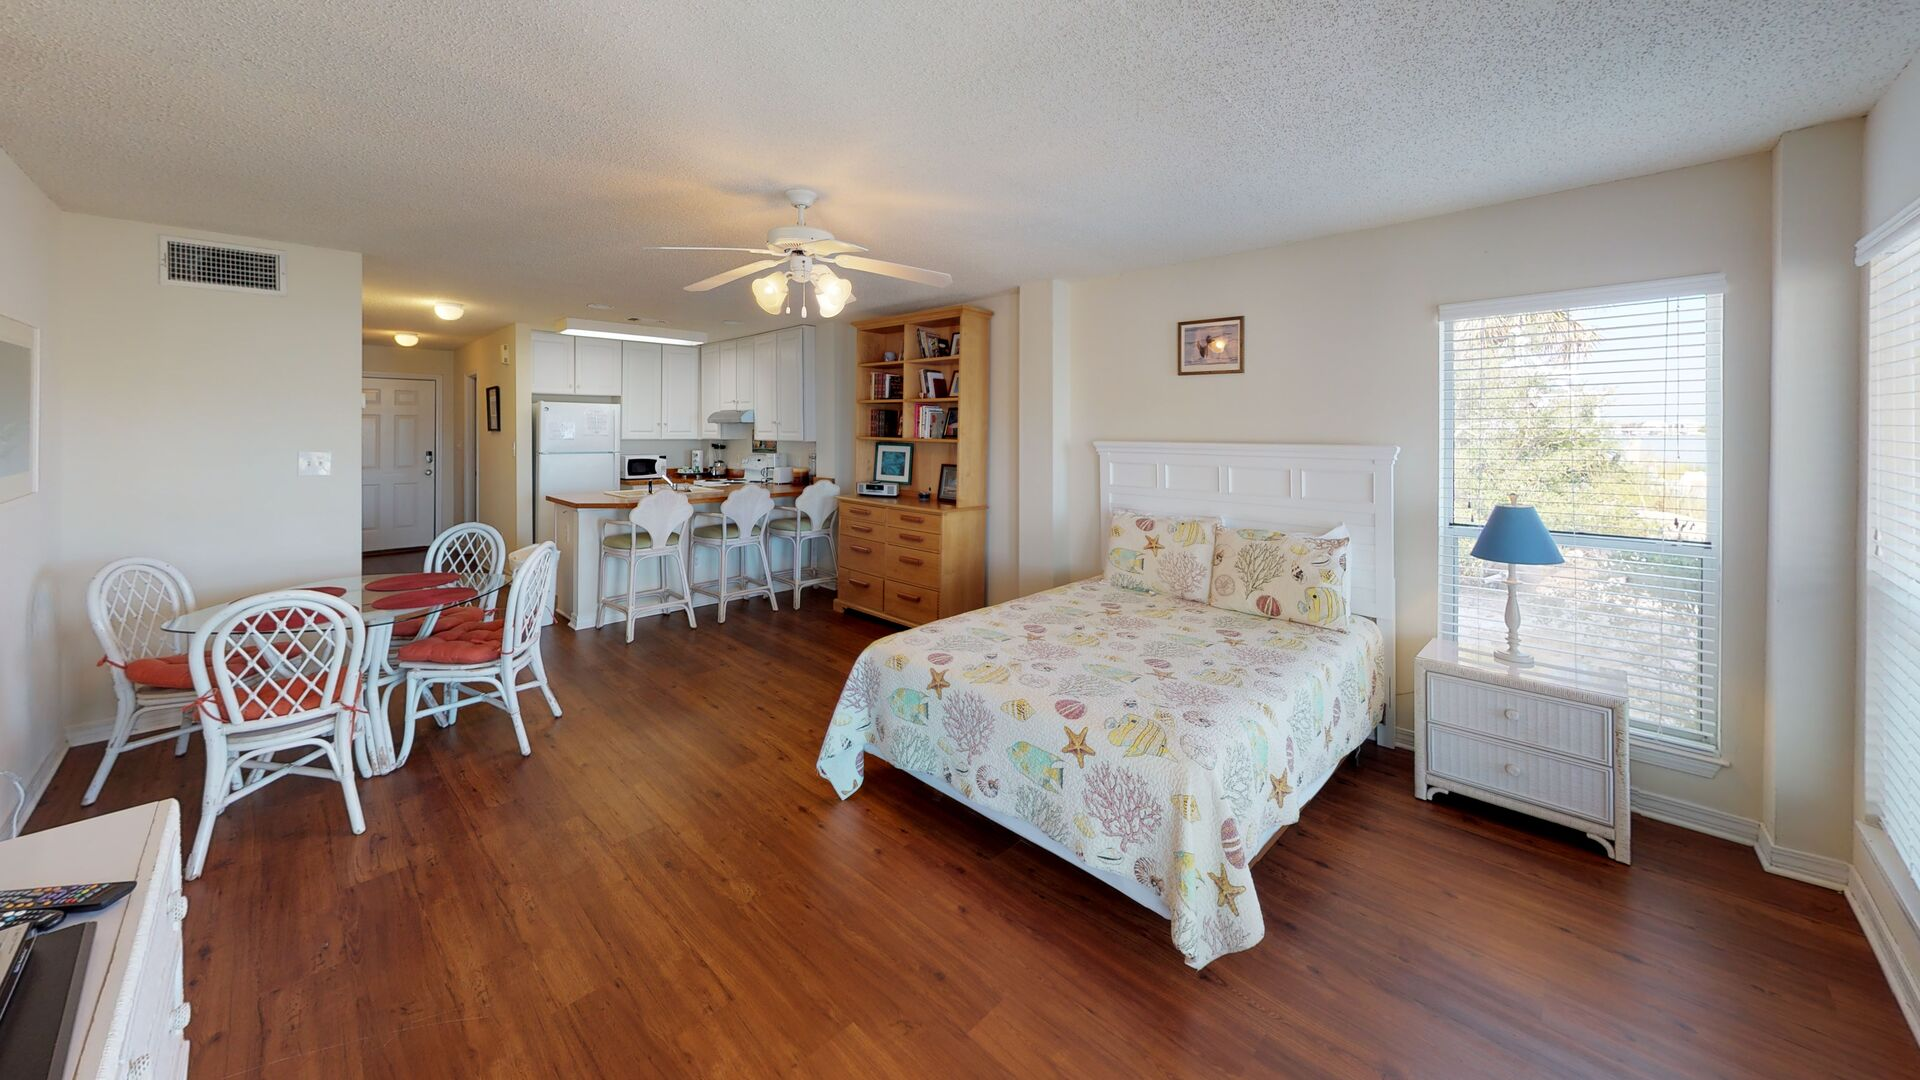 Ground floor features a studio apartment with separate entrance